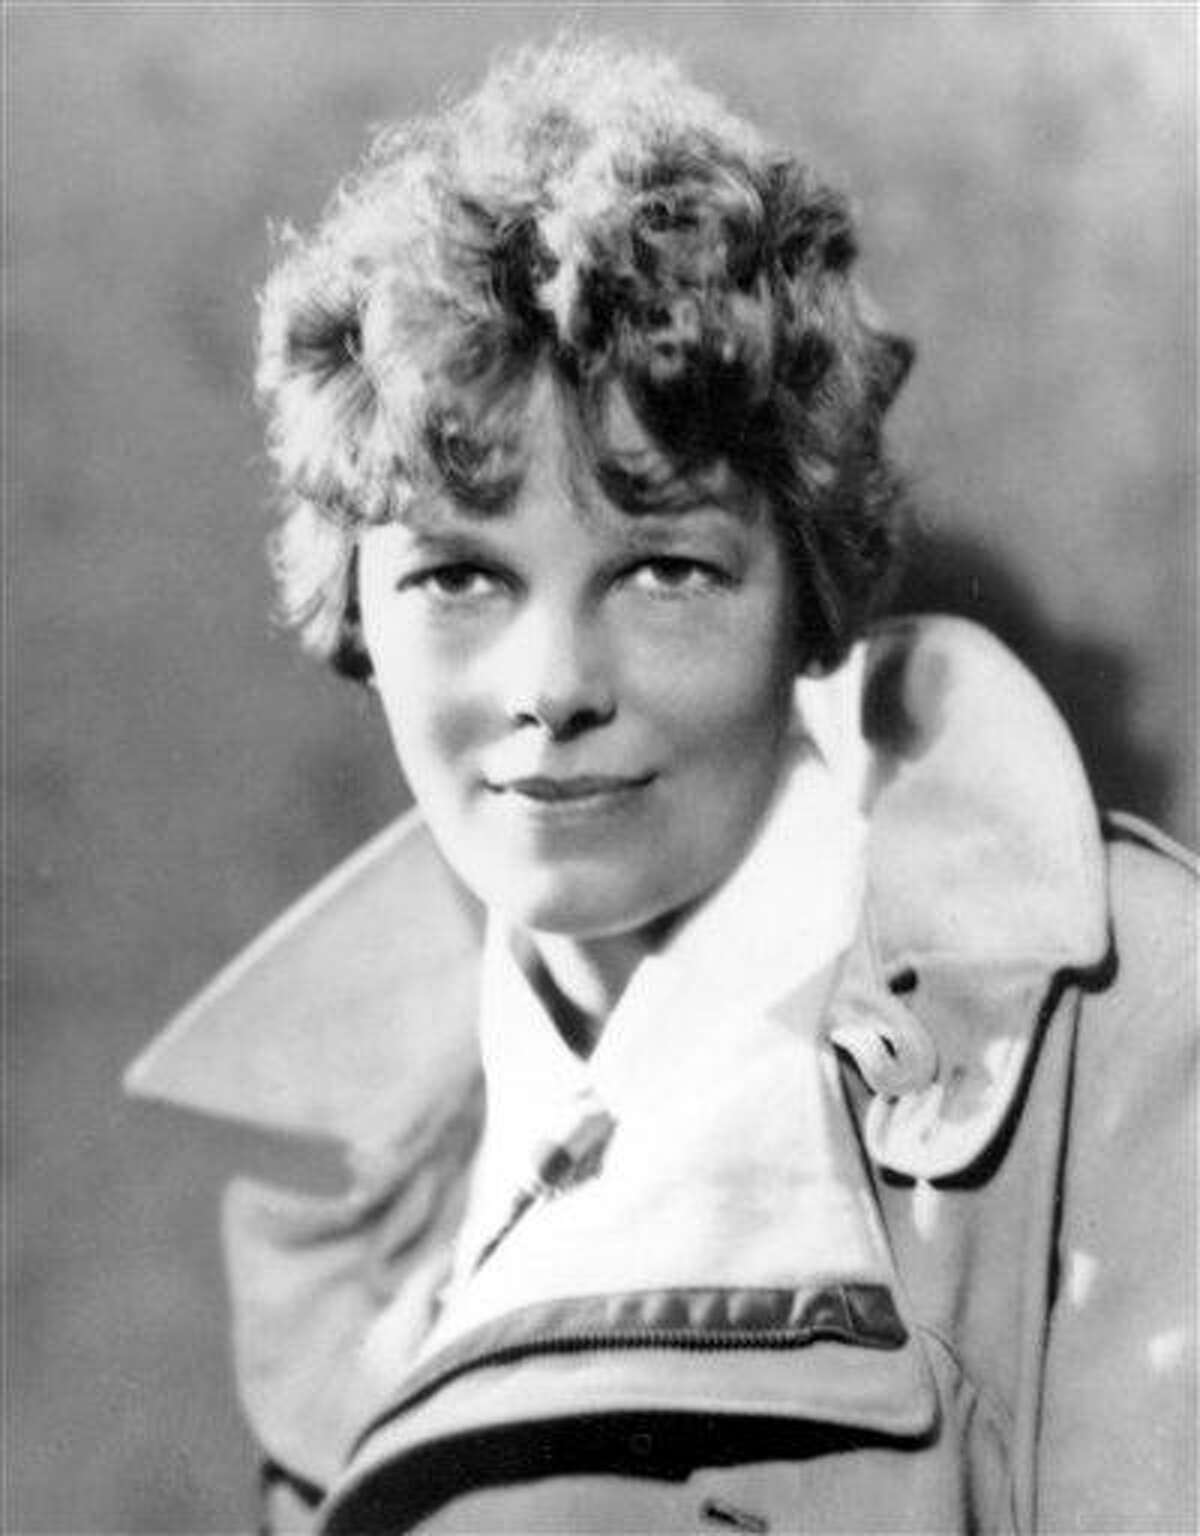 An undated file photo shows American aviatrix Amelia Earhart. A $2.2 million expedition is hoping to finally solve one of America's most enduring mysteries: What happened to Earhart when she went missing over the South Pacific 75 years ago? Associated Press